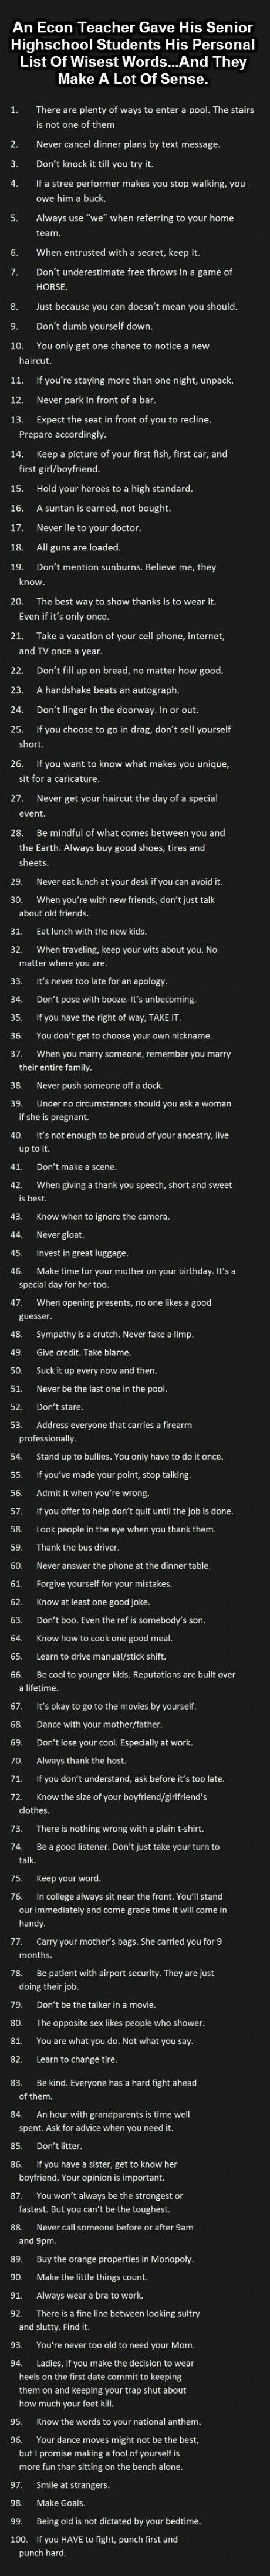 100 wise words that will improve your life